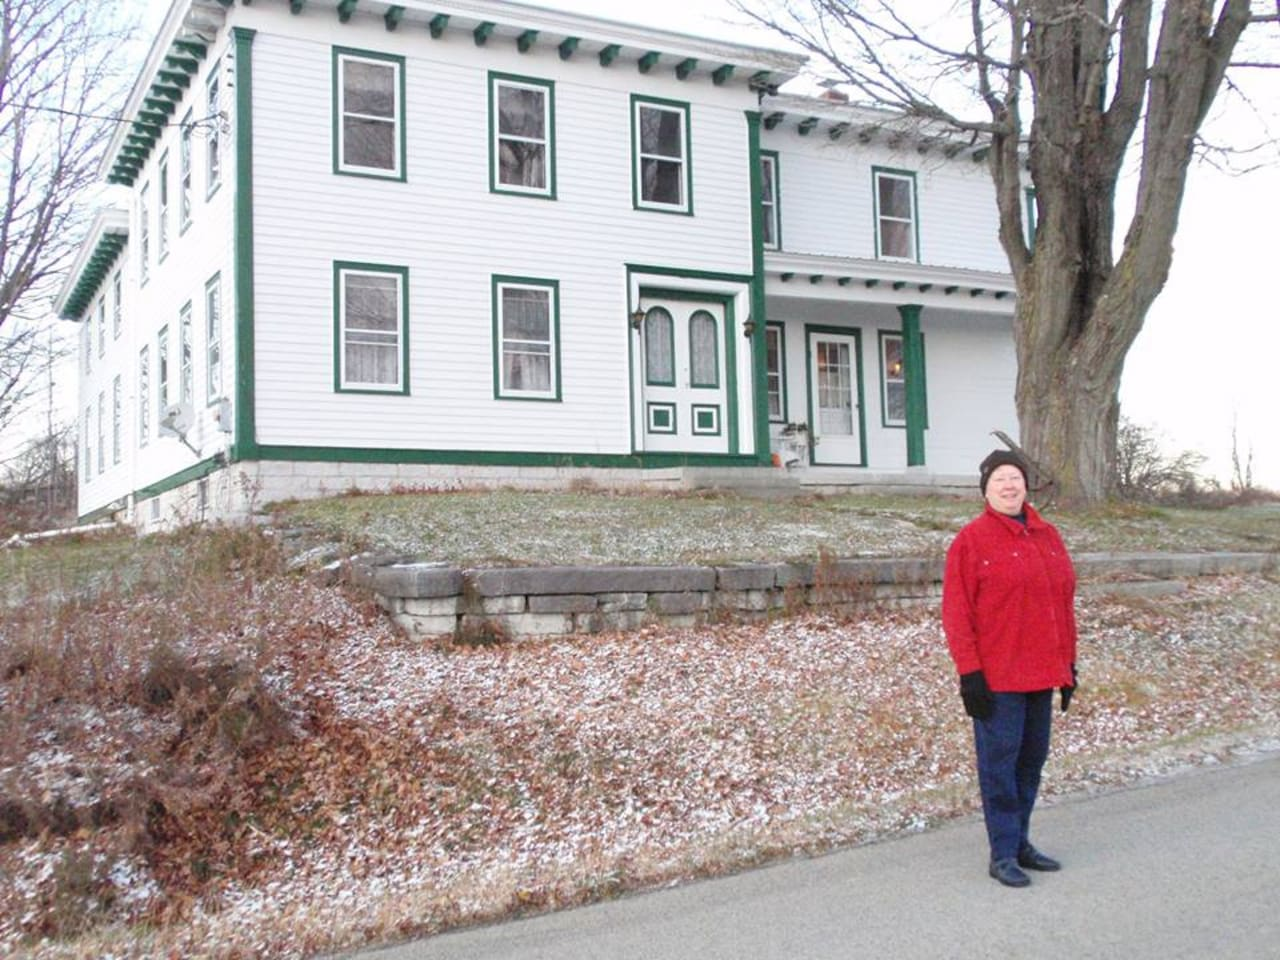 The historic Hoffman Farm, circa 1850, is located in the foothills of the Adirondack mountains in south central New York.  Lots of hiking, scenic views and relaxation abound.